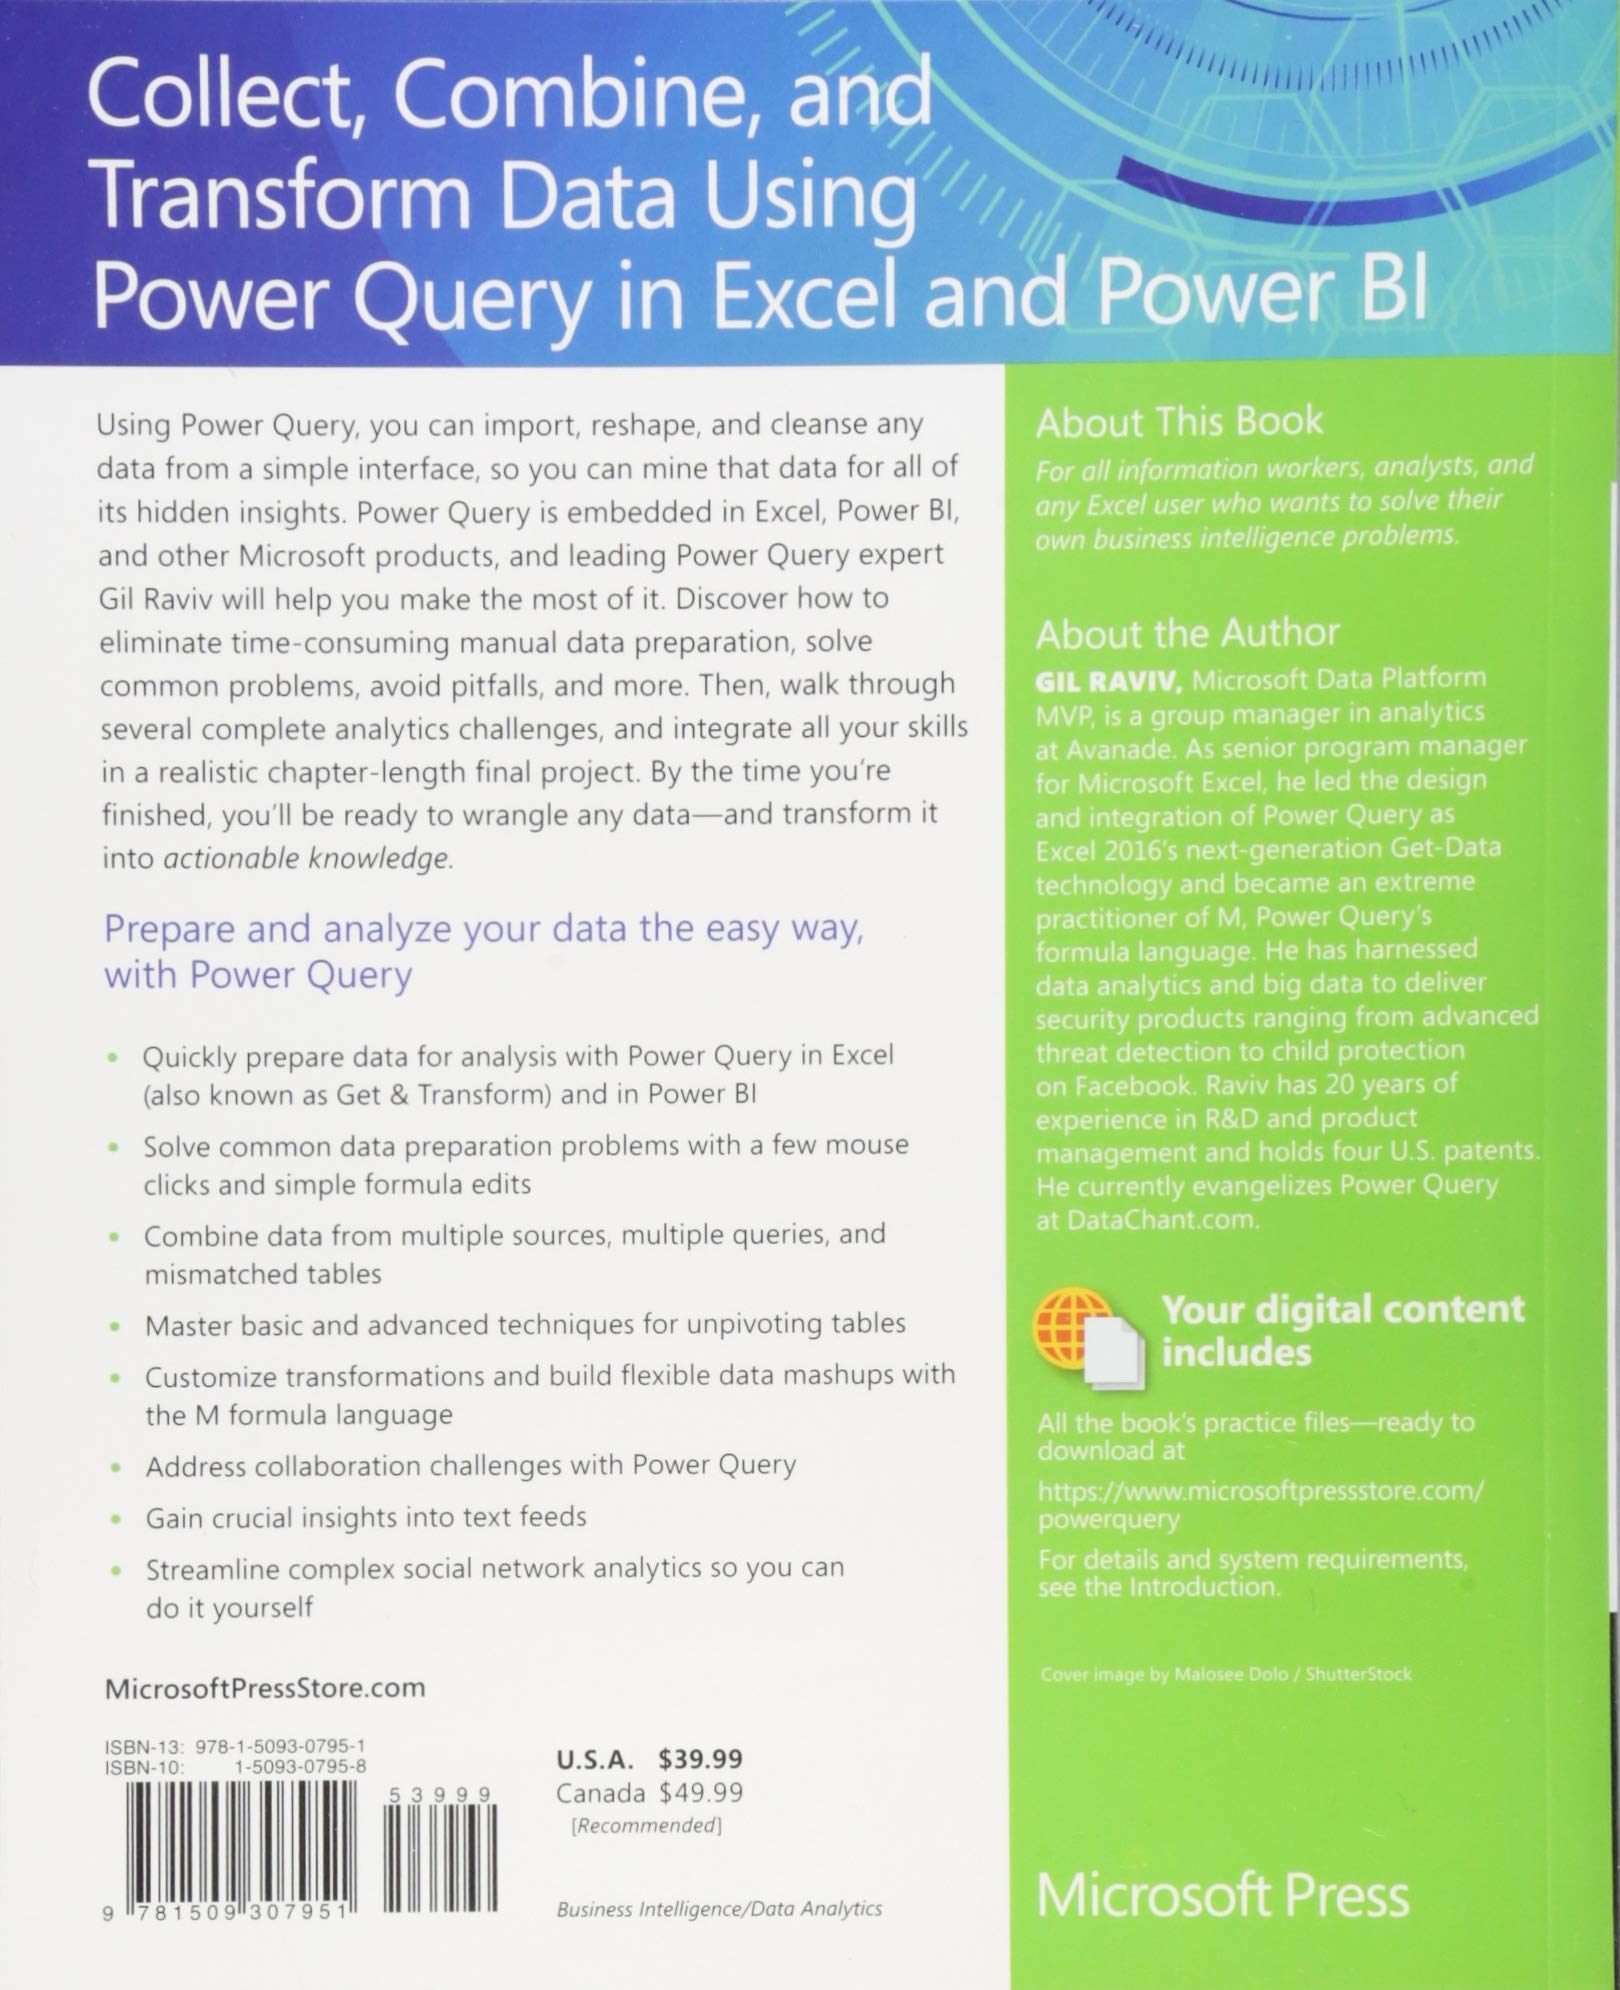 Collect, Combine, and Transform Data Using Power Query in Excel and